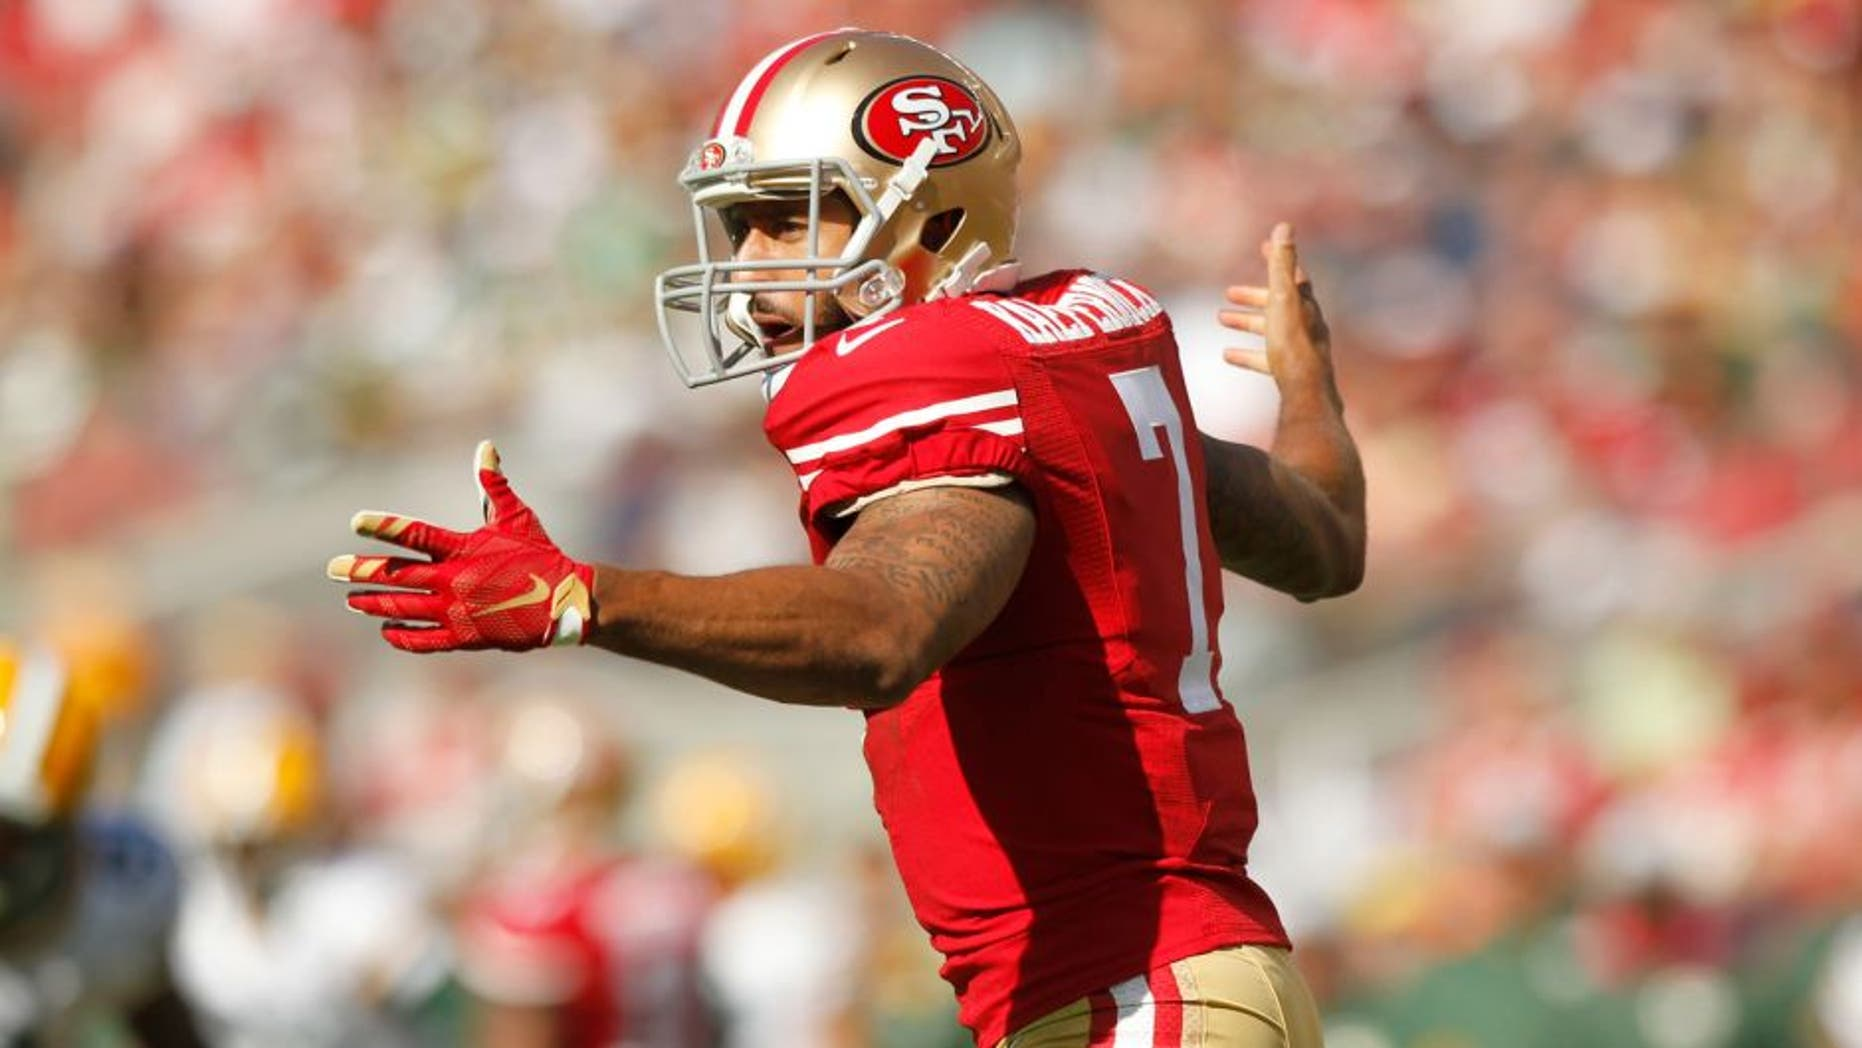 Oct 4, 2015; Santa Clara, CA, USA; San Francisco 49ers quarterback Colin Kaepernick (7) reacts after being hit on a 49ers running play against the Green Bay Packers in the third quarter at Levi's Stadium. The Packers defeated the 49ers 17-3. Mandatory Credit: Cary Edmondson-USA TODAY Sports